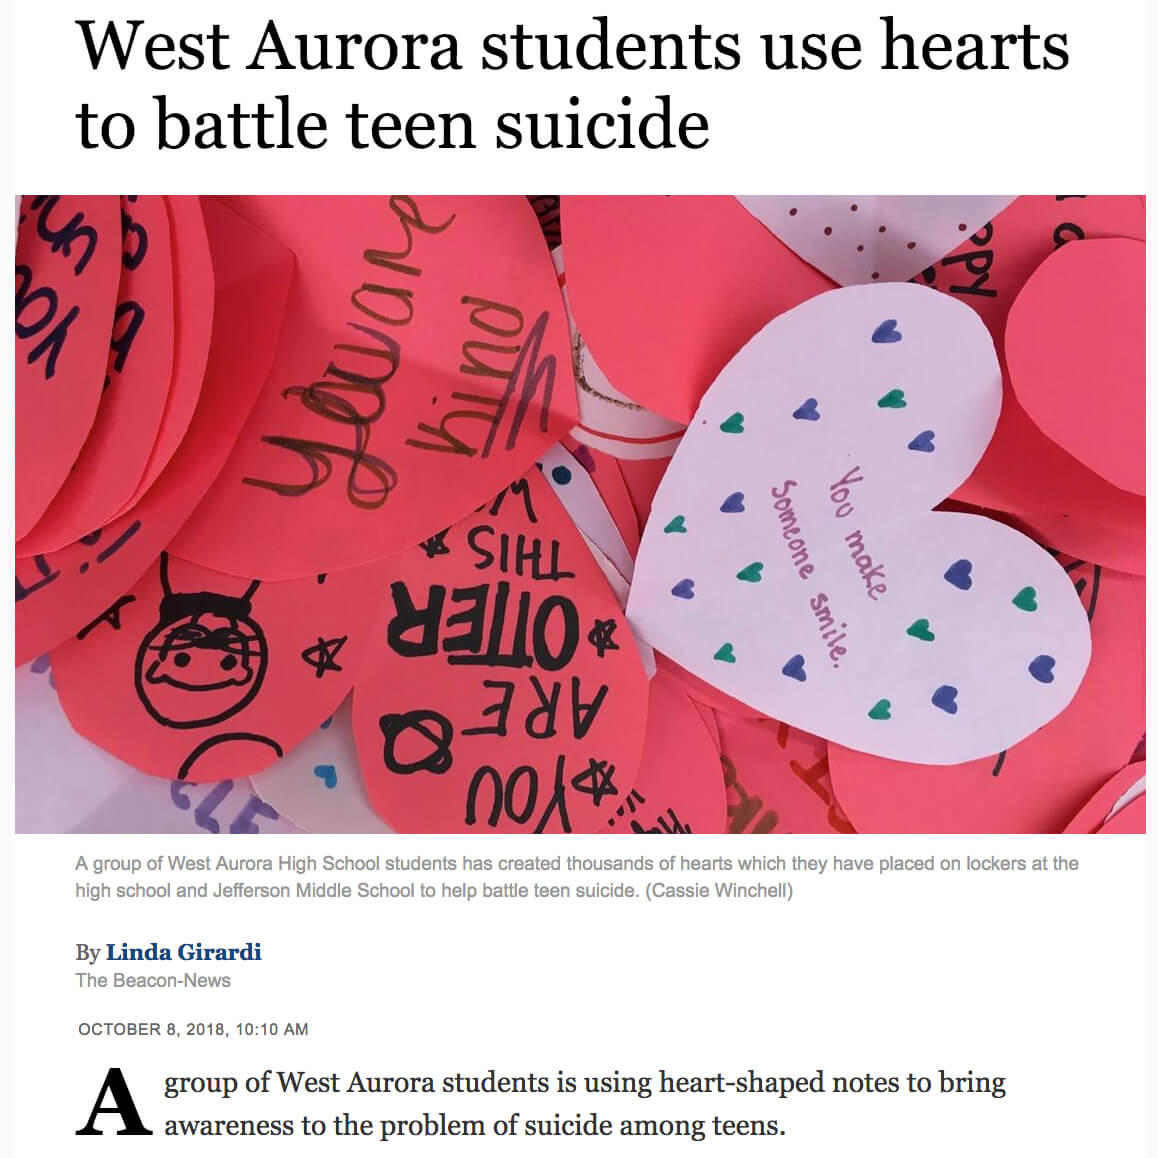 Hearts on Lockers to Battle Suicide